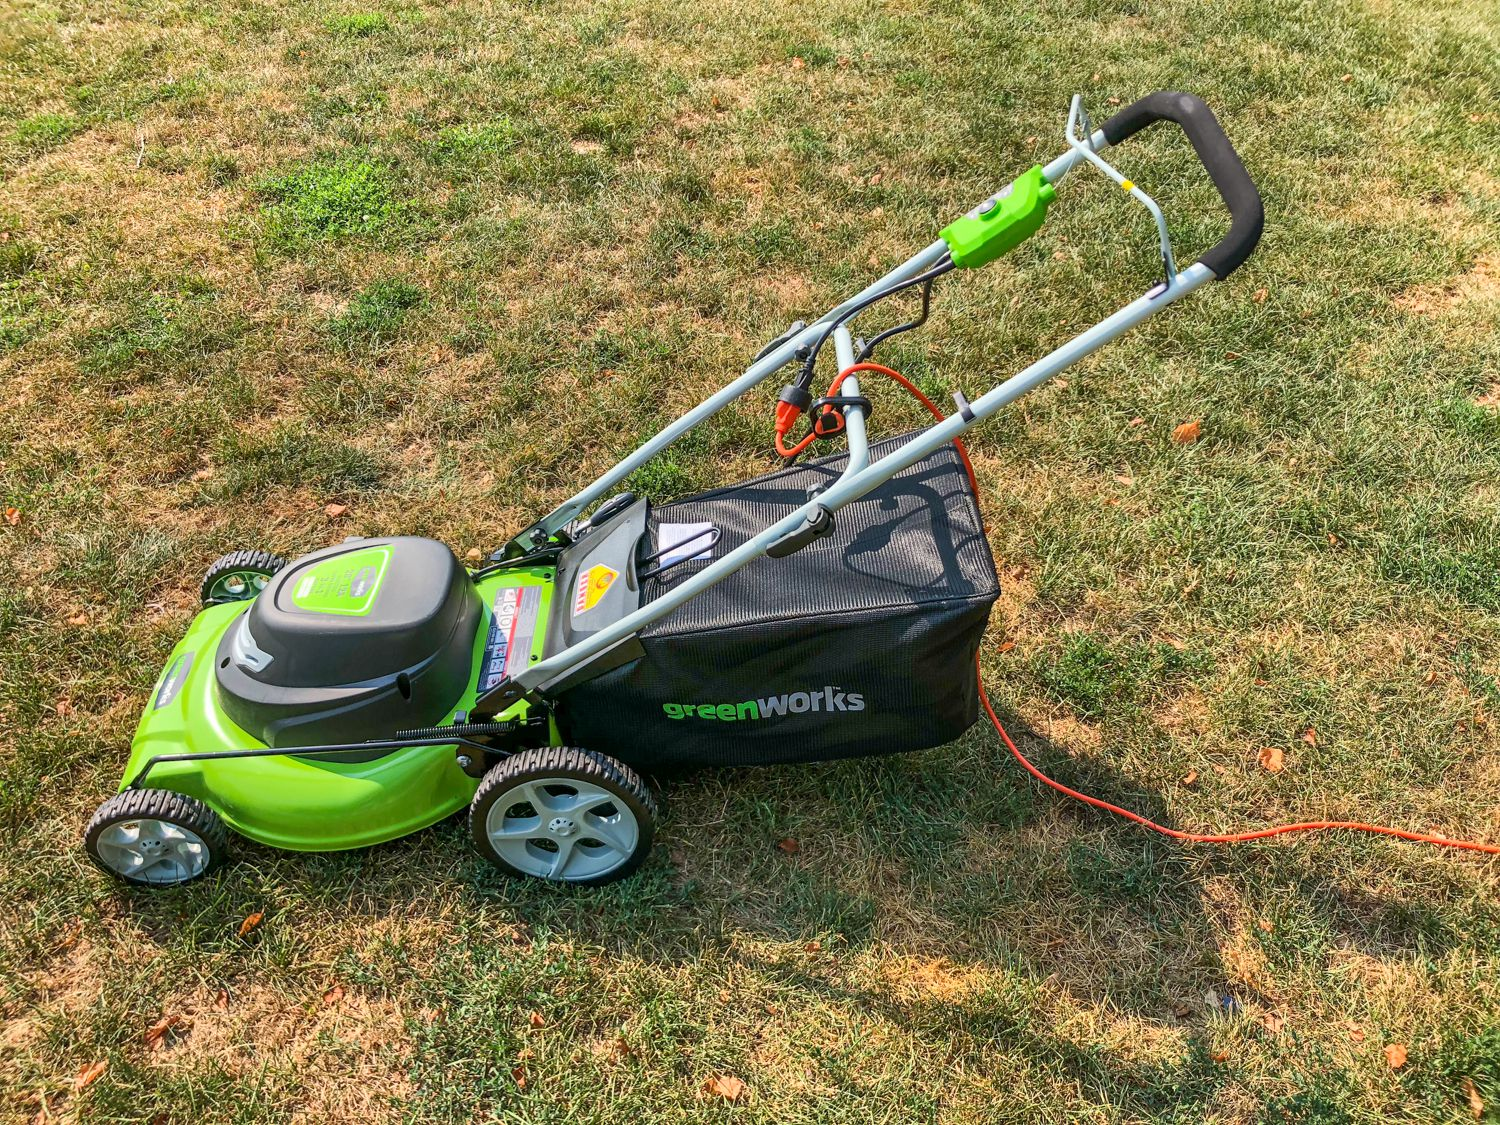 Greenworks 12 Amp Corded 20 Inch Lawn Mower